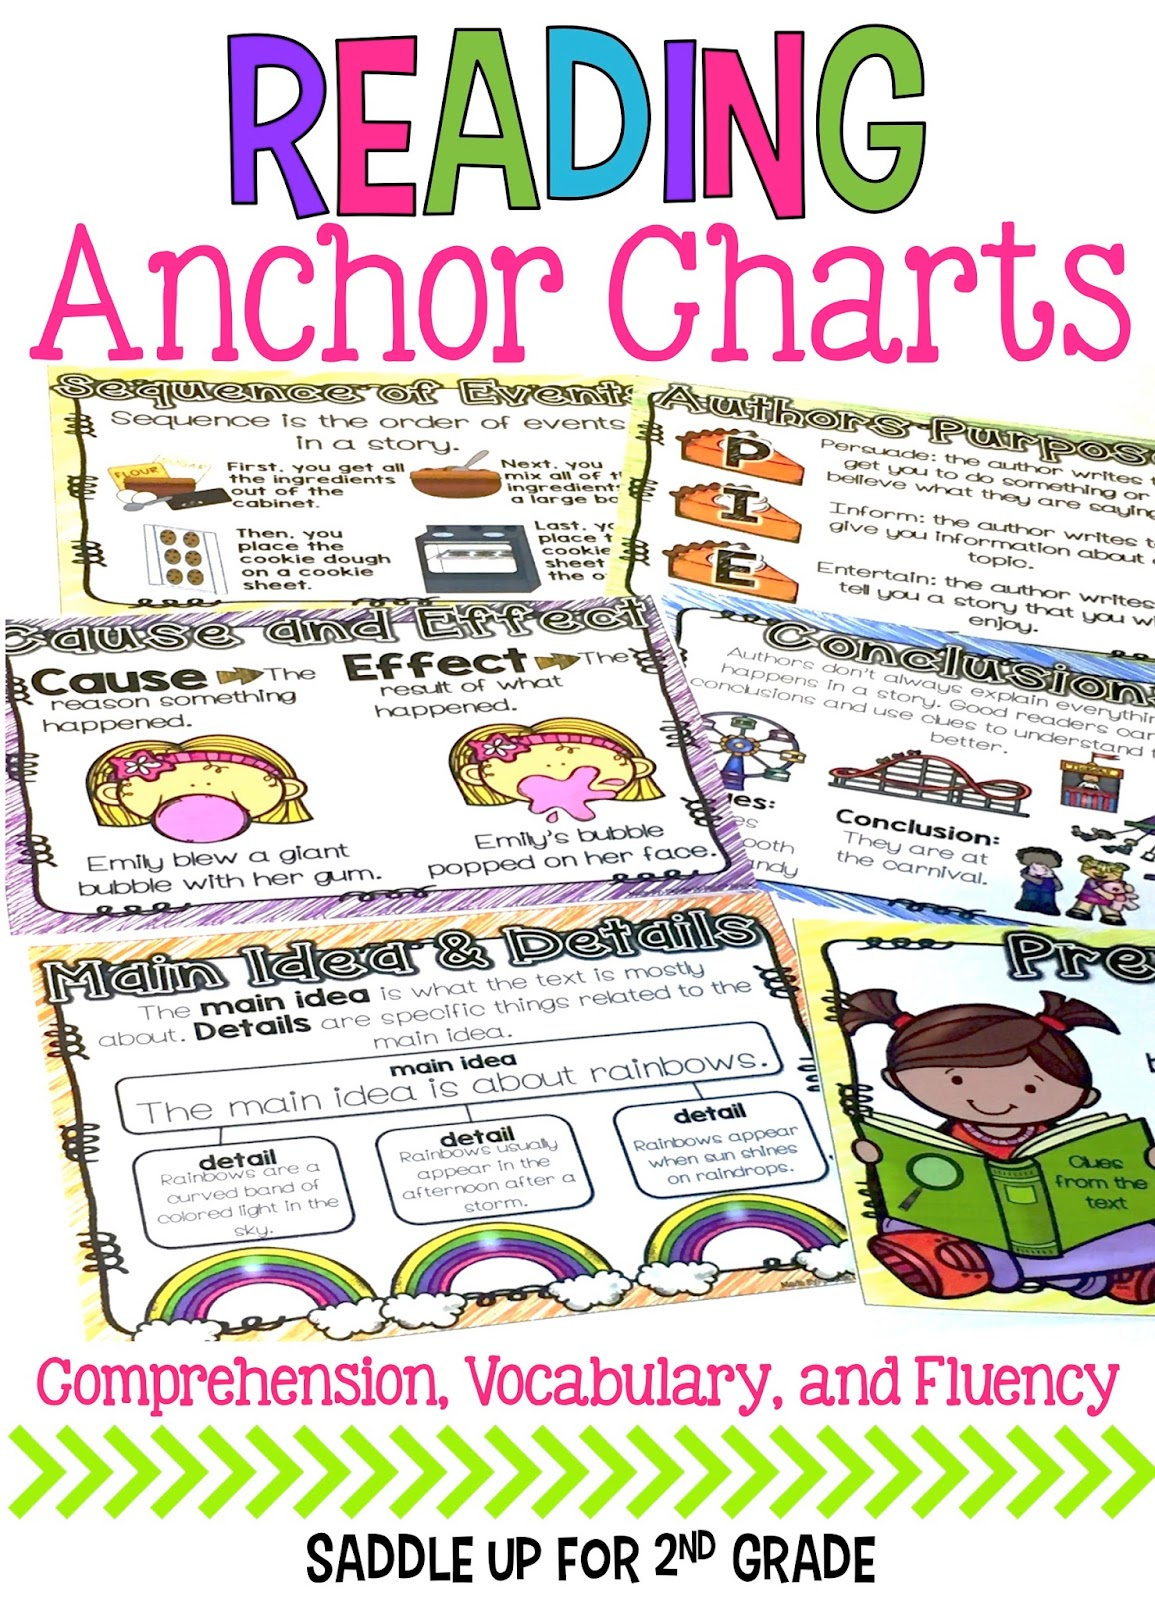 Reading Anchor Charts - Saddle up for Second Grade